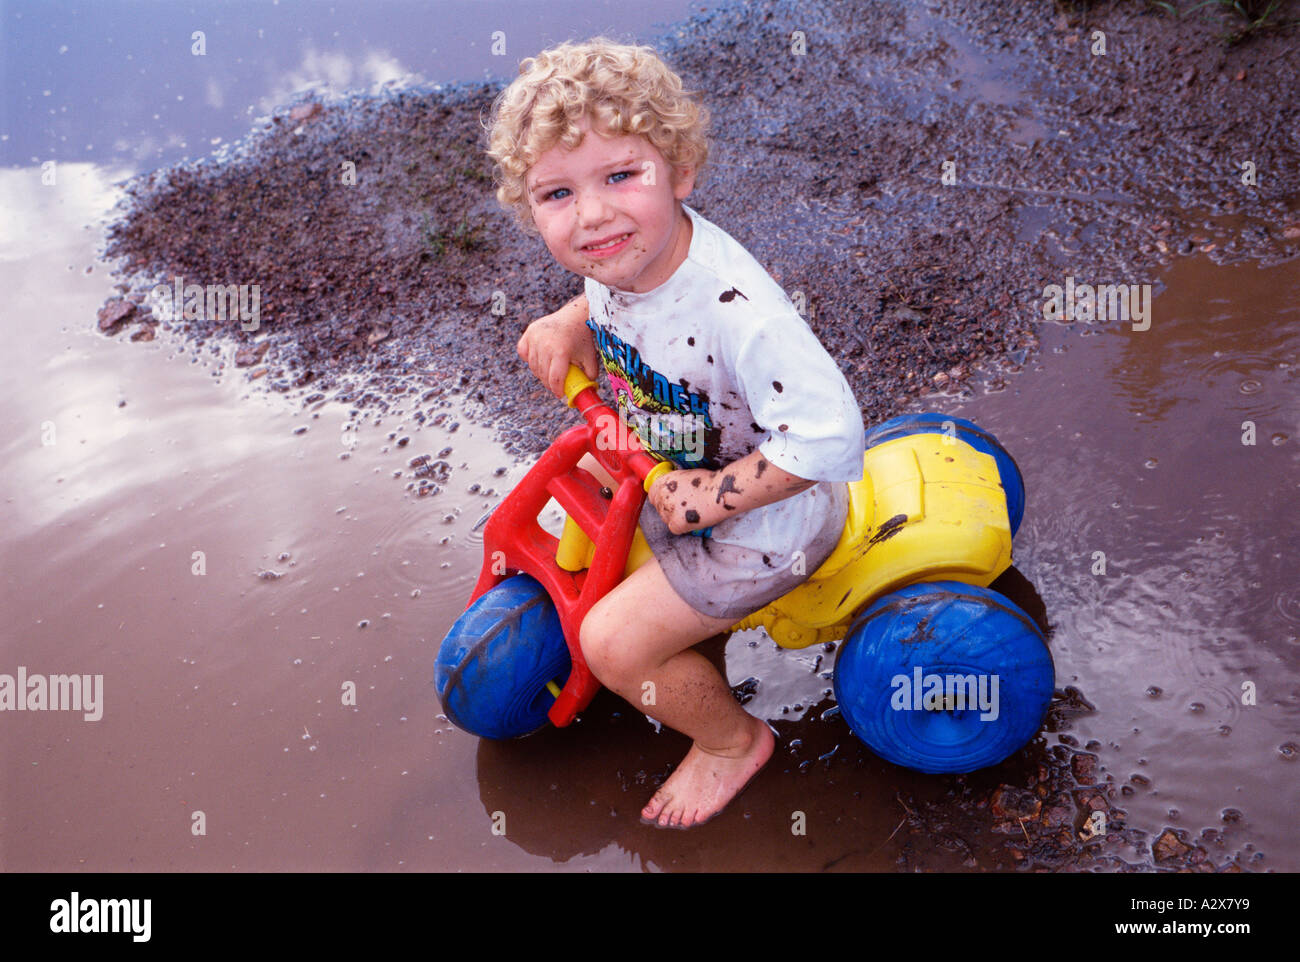 Little boy child outdoors riding plastic tricycle - Stock Image